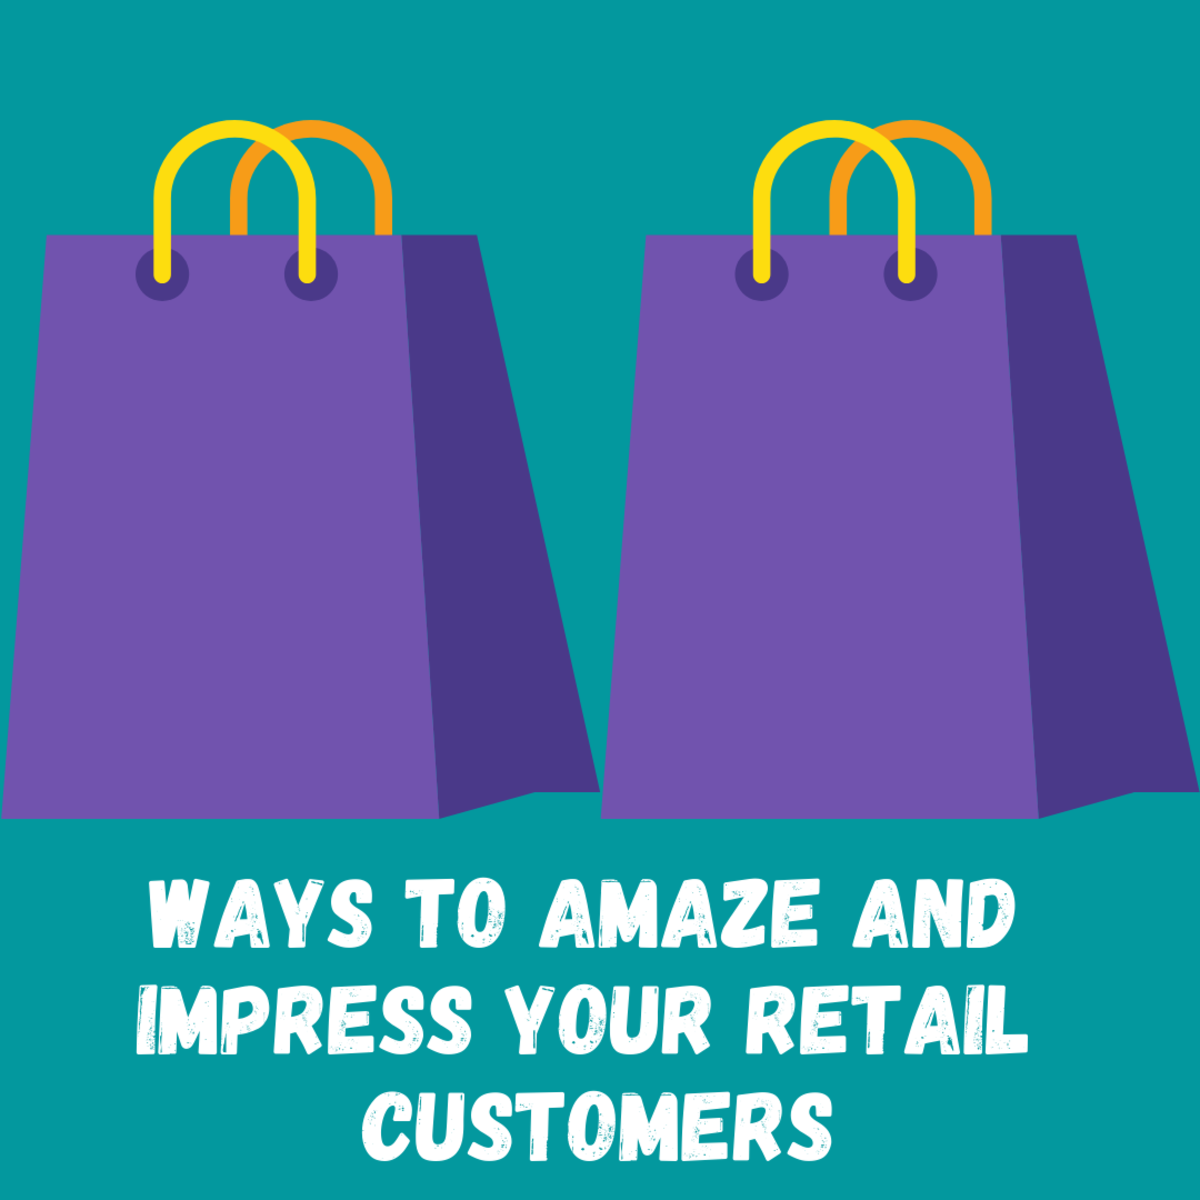 16 Ways to Amaze and Impress Your Retail Customers